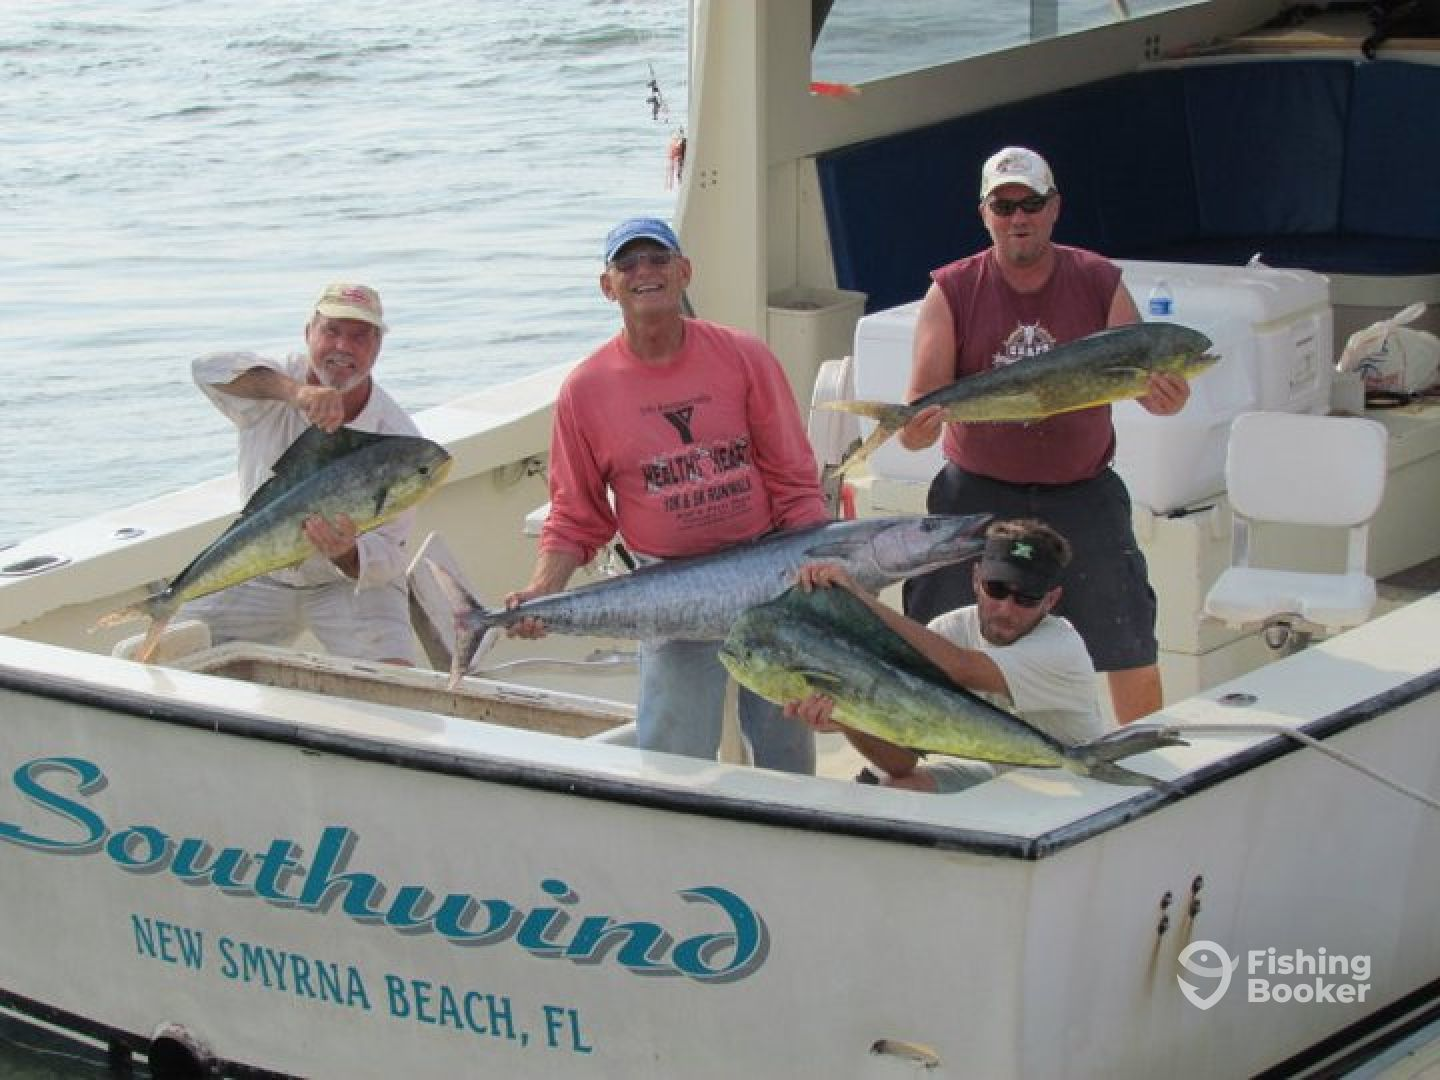 Southwind charters with freddie z new smyrna beach fl for New smyrna fishing charters